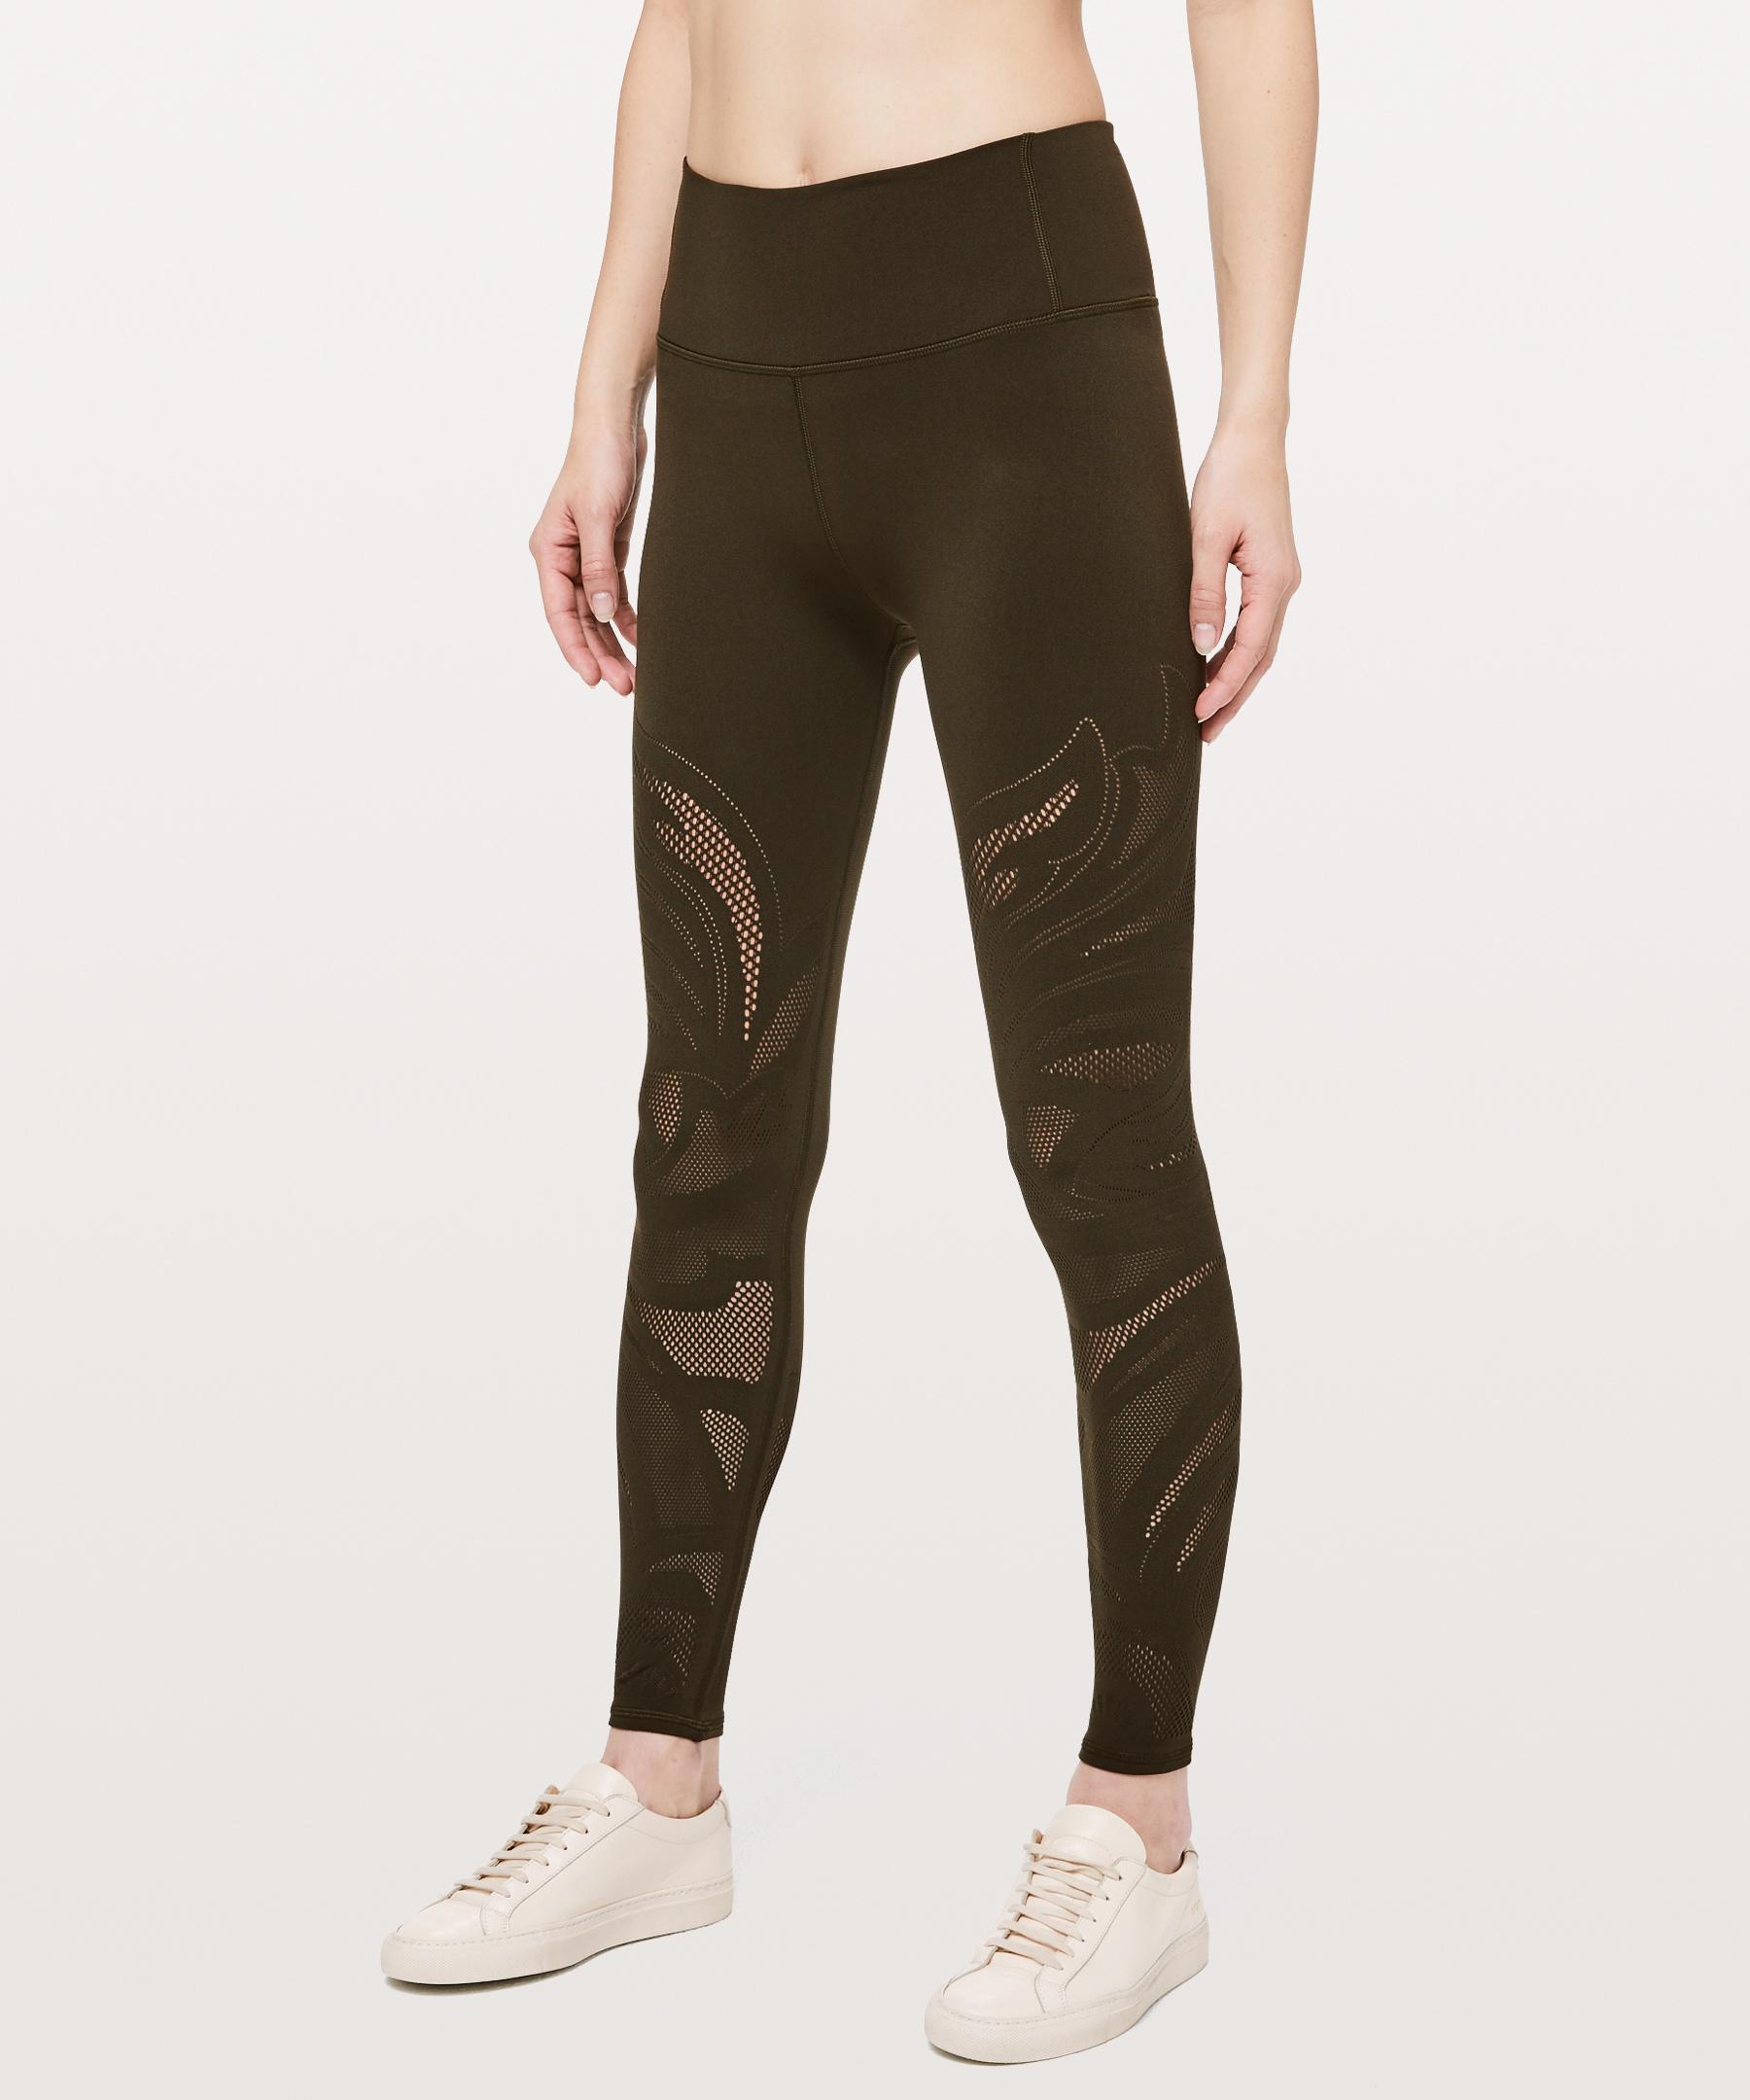 0c24684df lululemon athletica Reveal Tight  en Avante 26